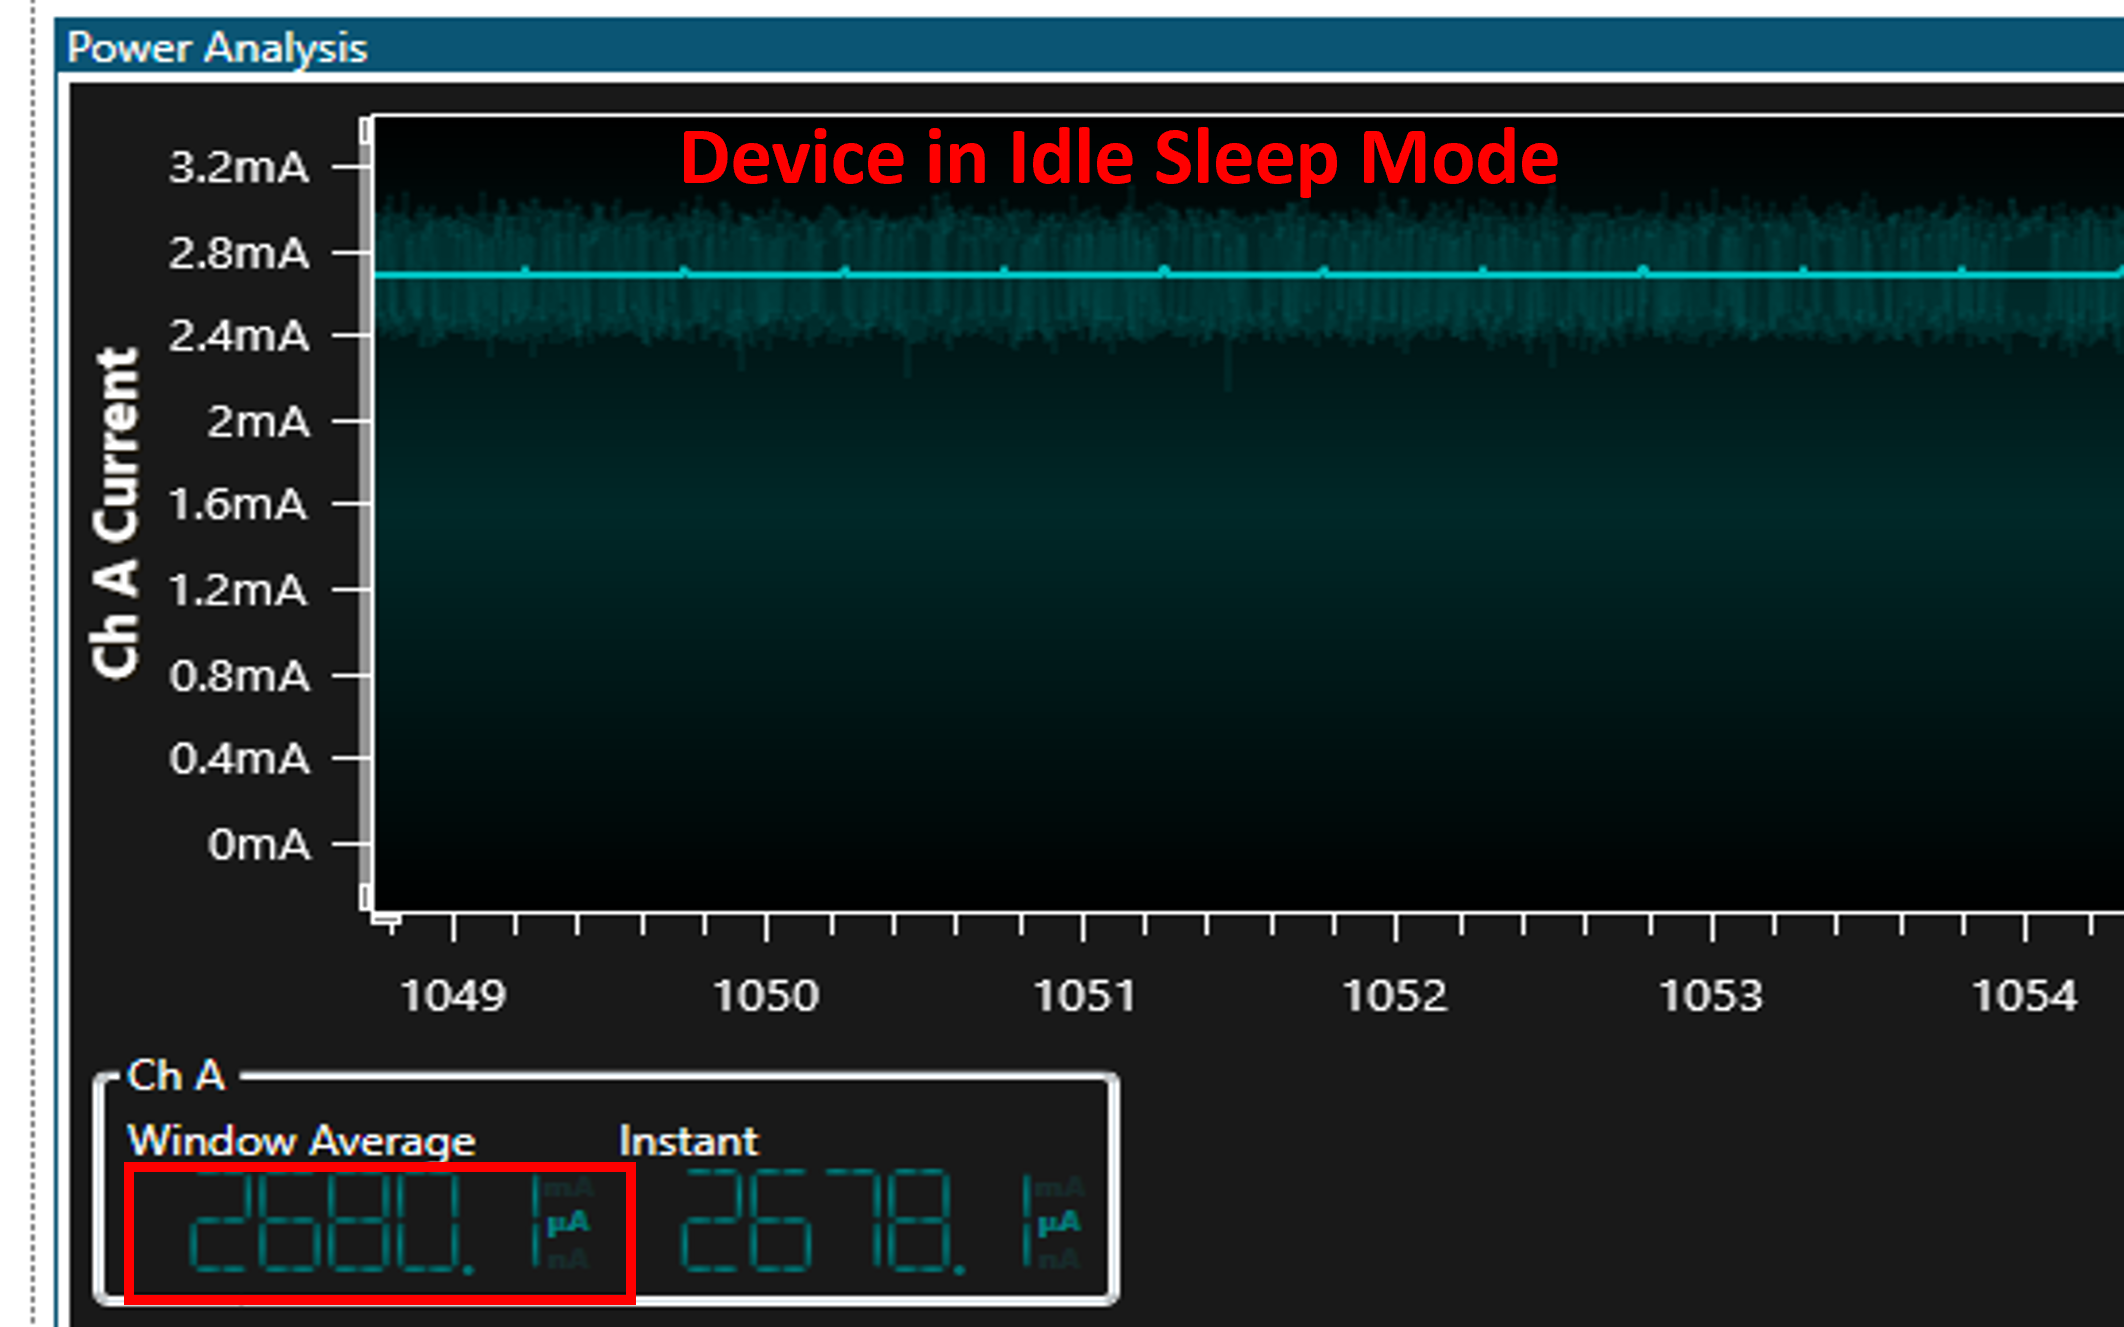 device_in_idle_mode.png